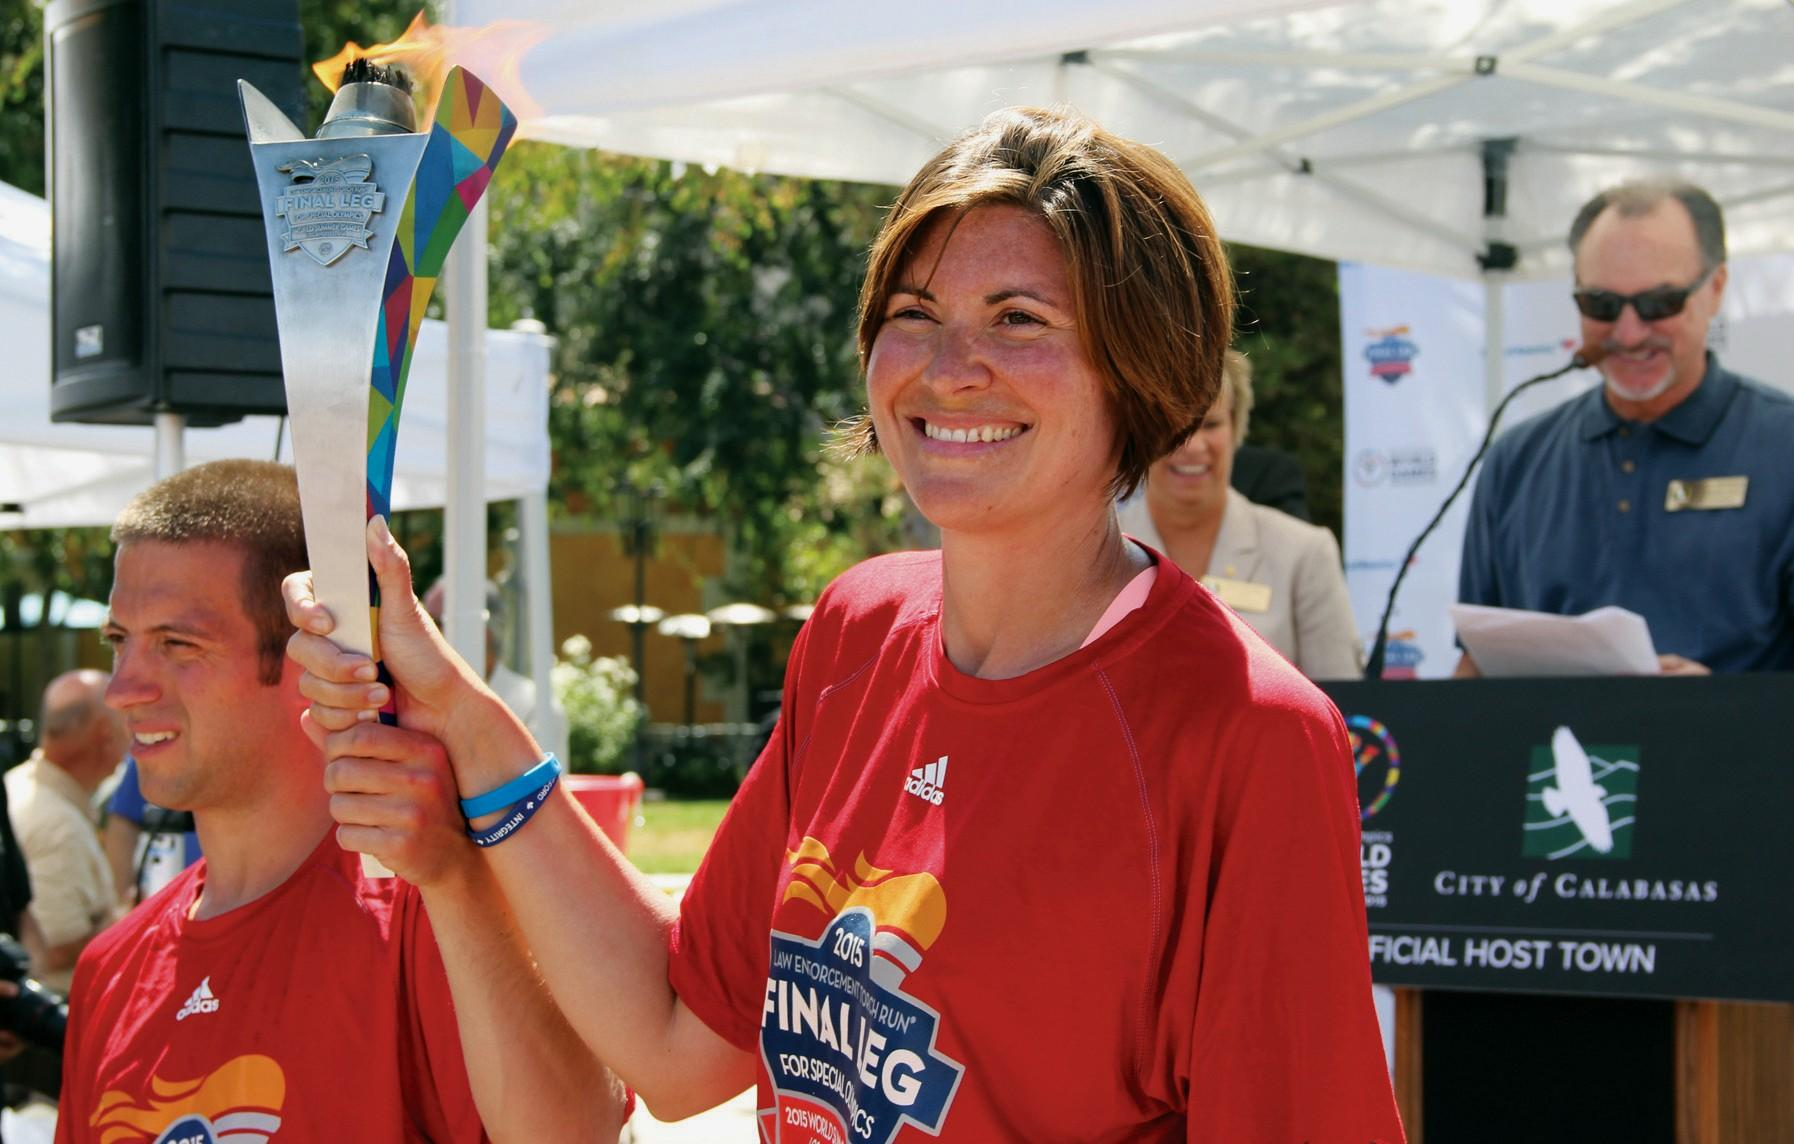 FINAL LEG—Jennifer Riley, an officer with the Delaware Department of Corrections, and athlete Joshua Norris lead the torch run at Calabasas City Hall on July 17.